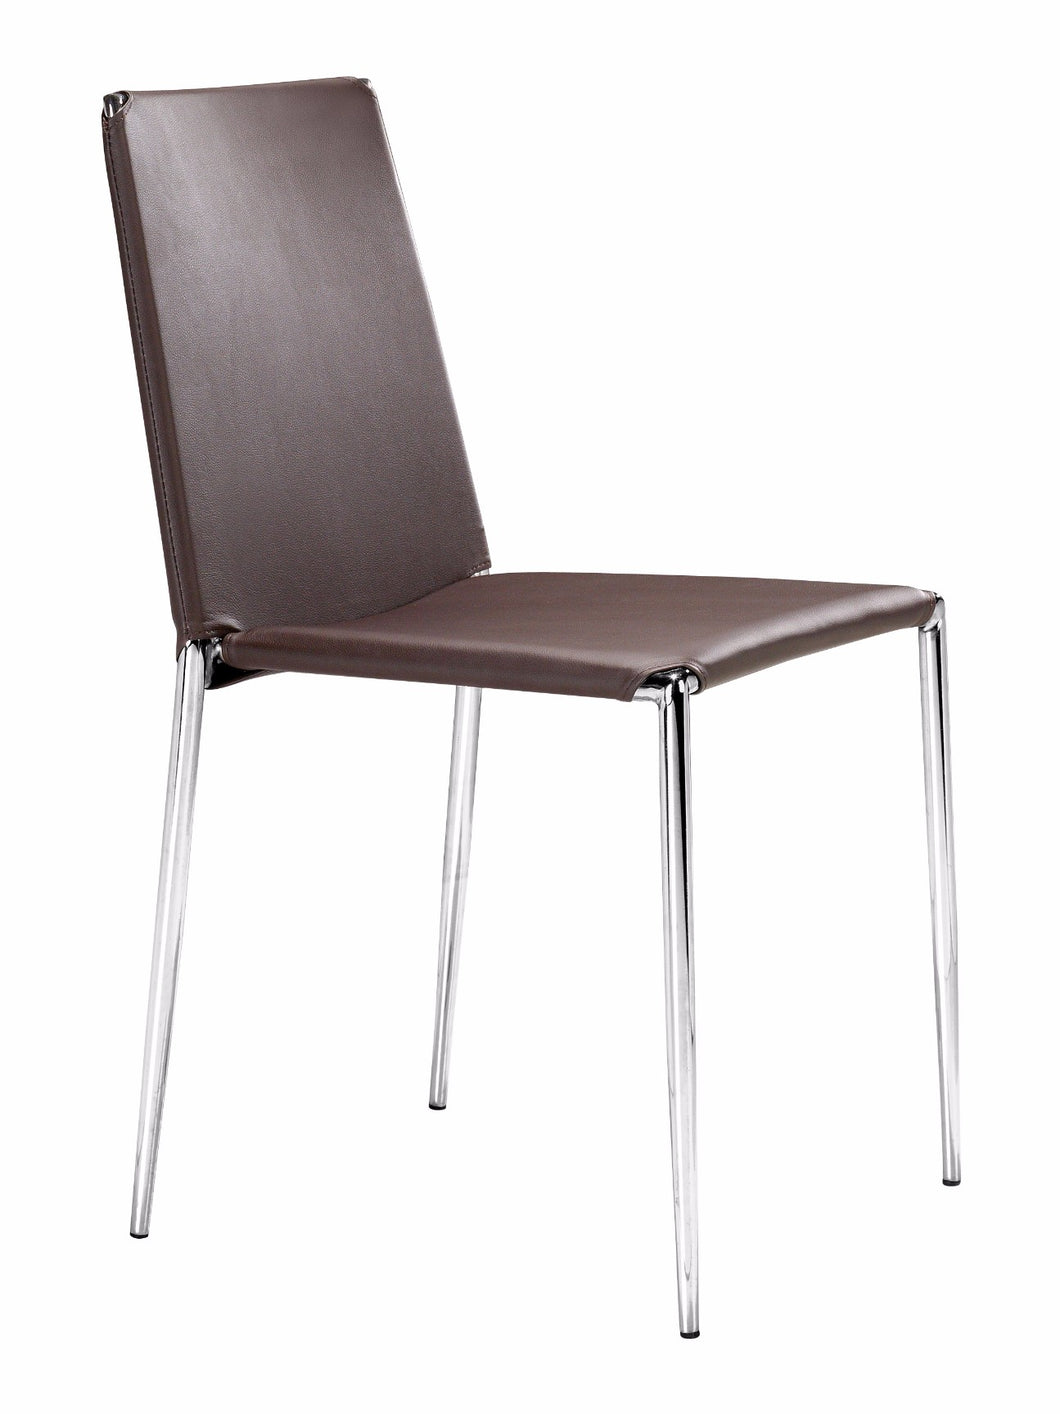 Dining Chair Espresso (Set of 4)